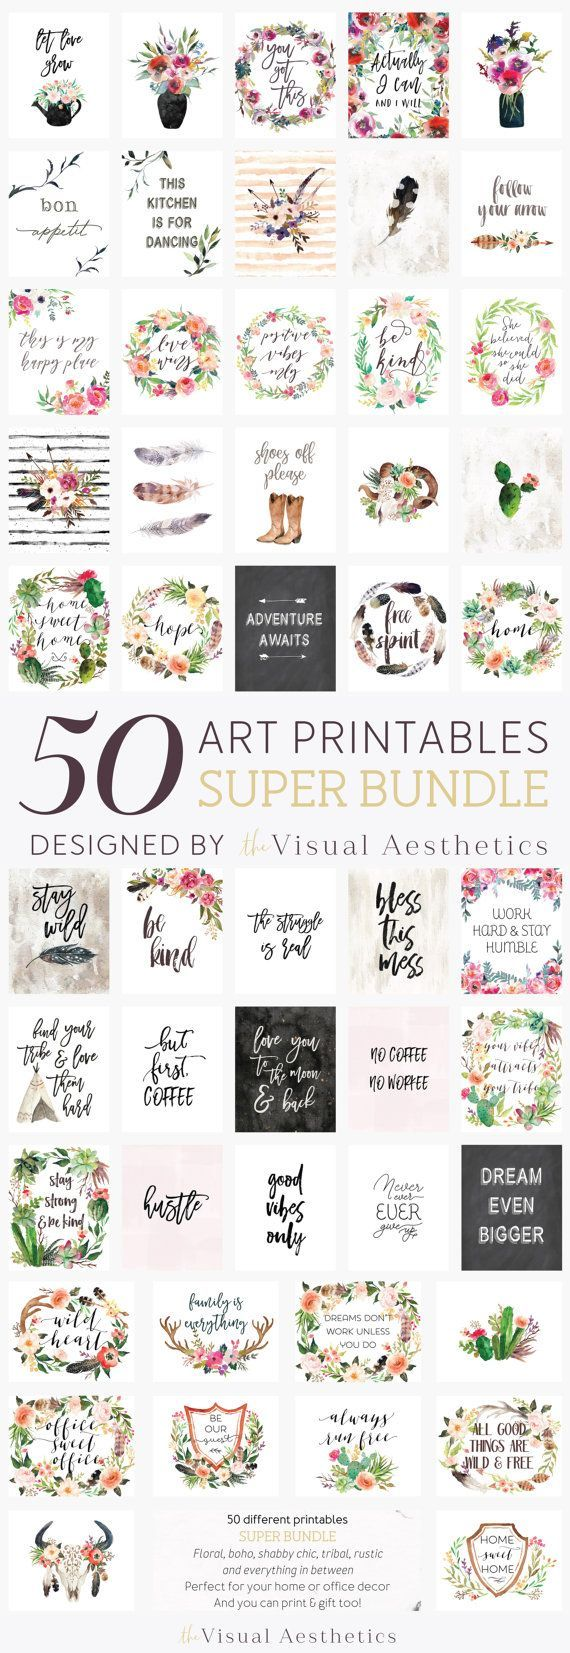 Bundle of 50 art printables by VisualAesthetics Boho, rustic, floral, inspirational quotes and everything in between.